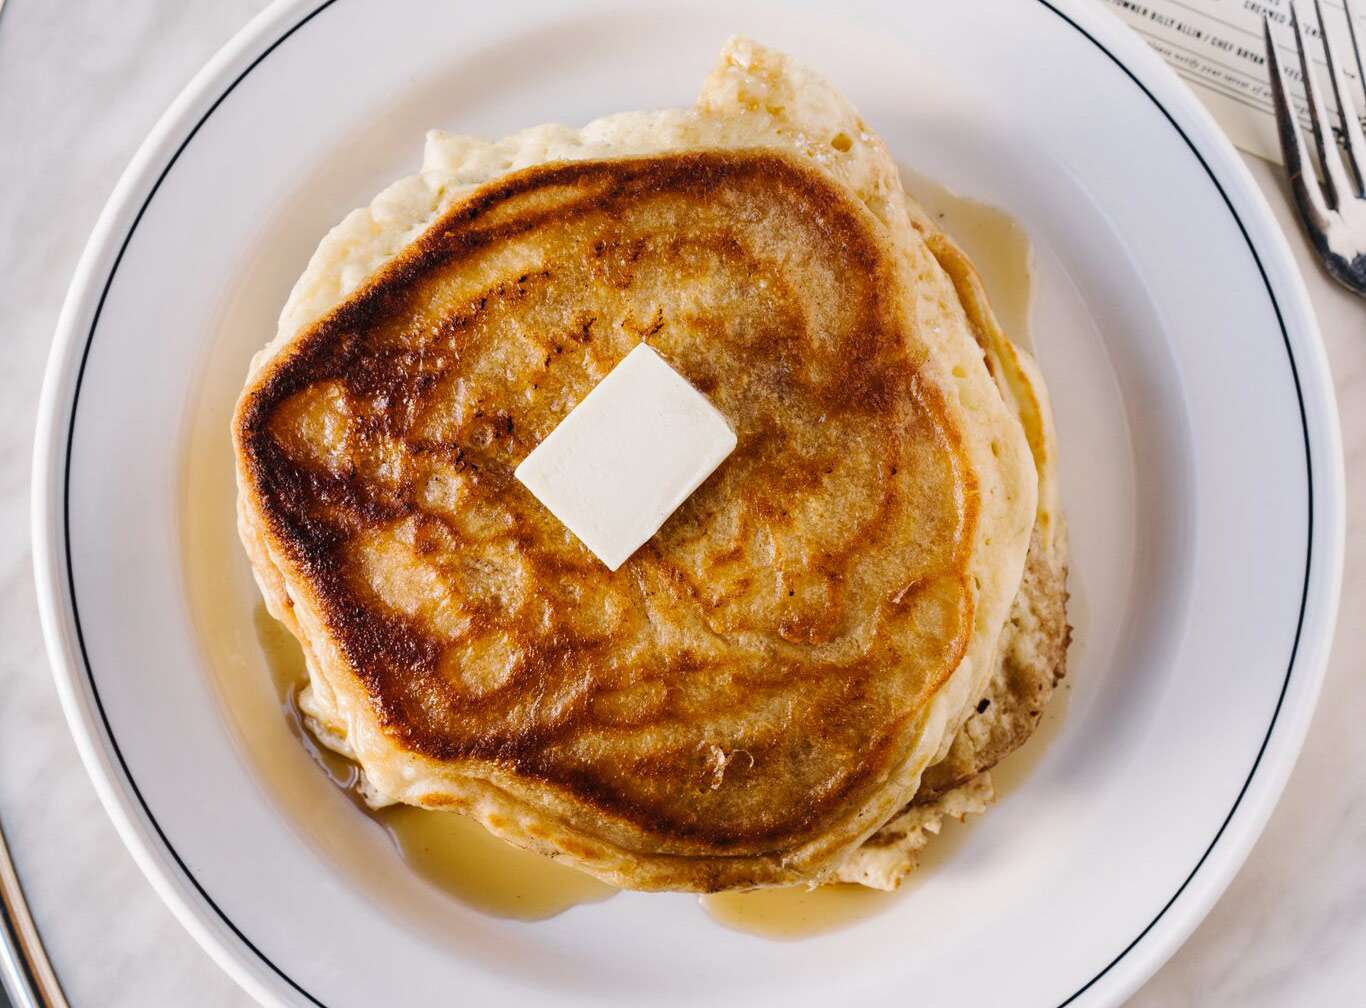 Pancakes at Bread & Butterfly